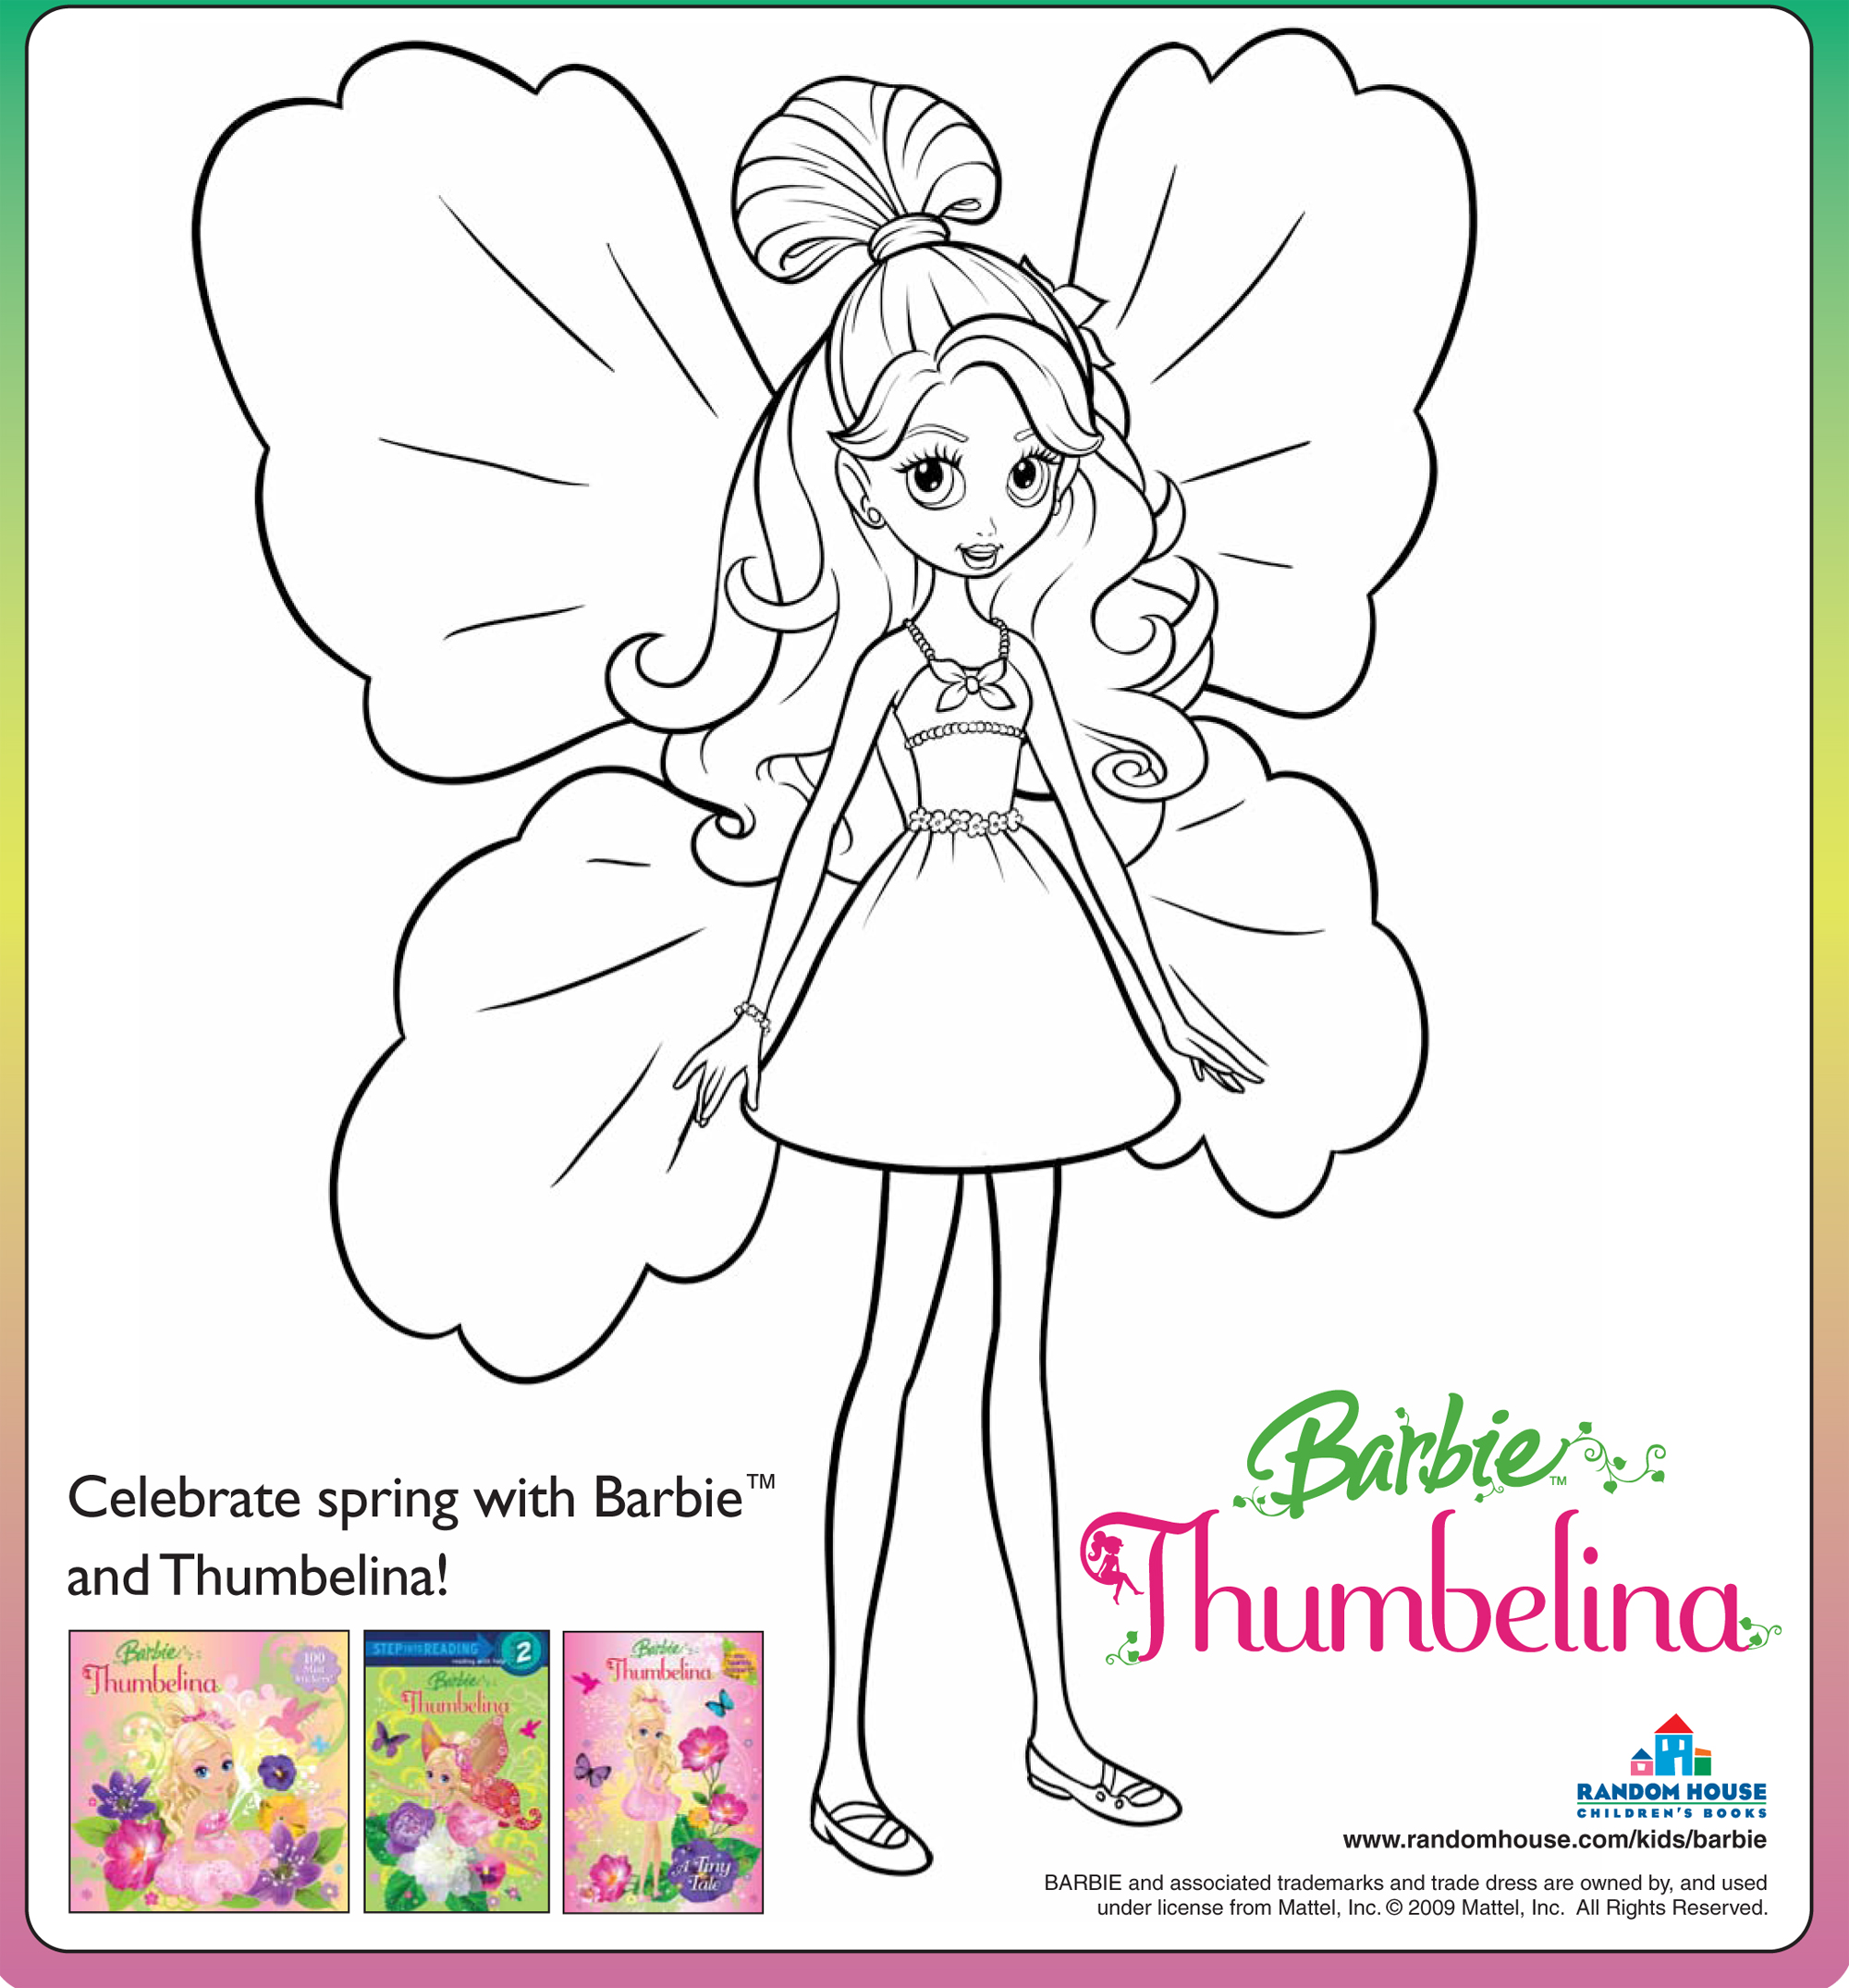 Barbie Thumbelina Free Coloring